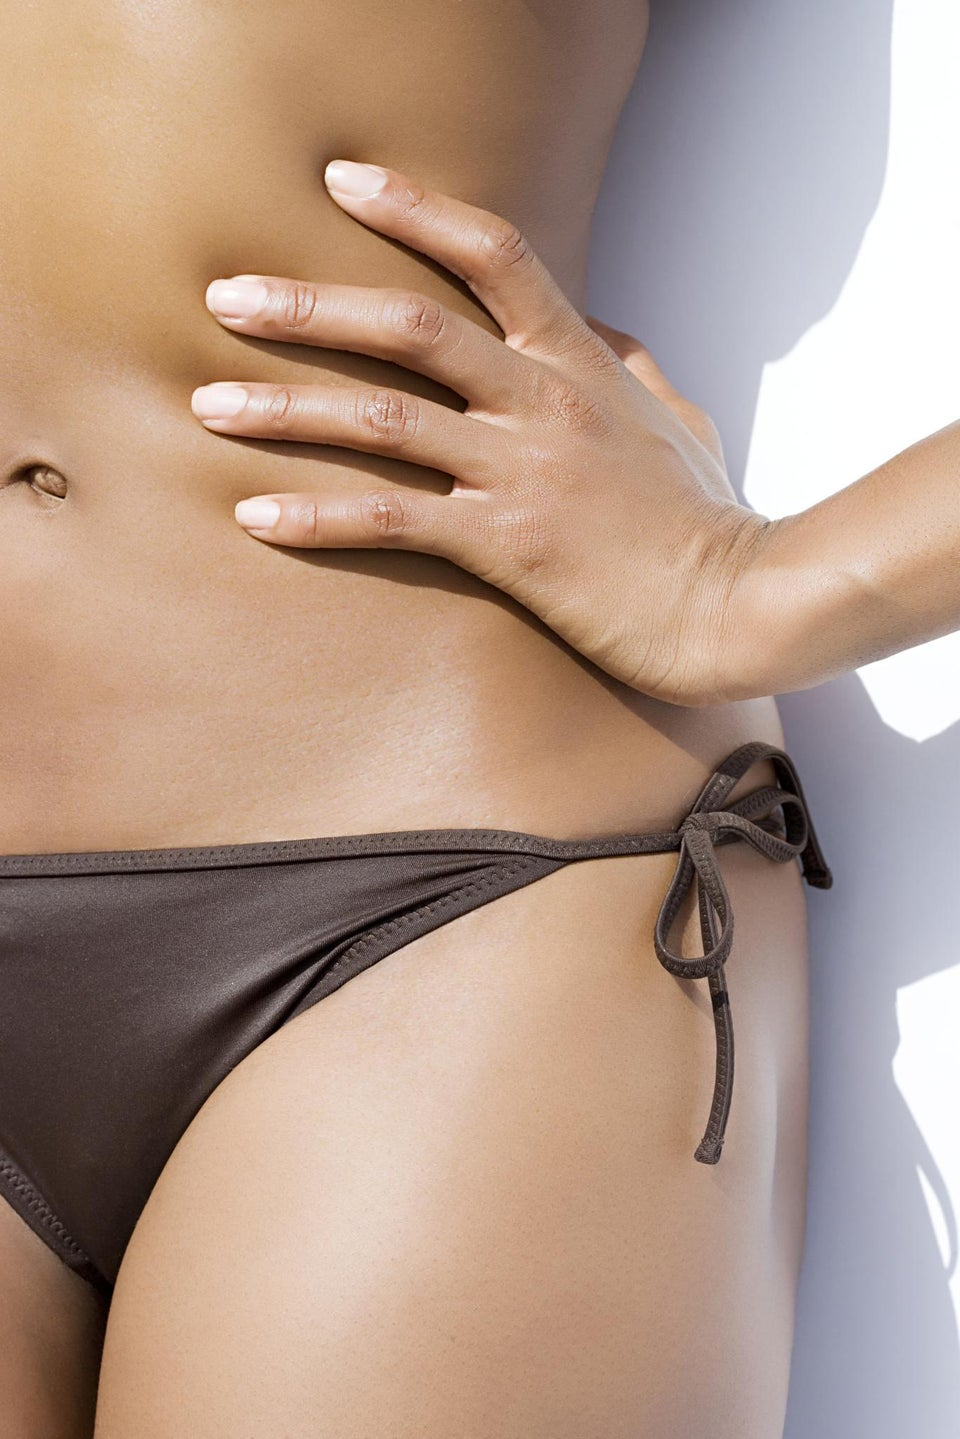 The Truth About Ingrown Hairs